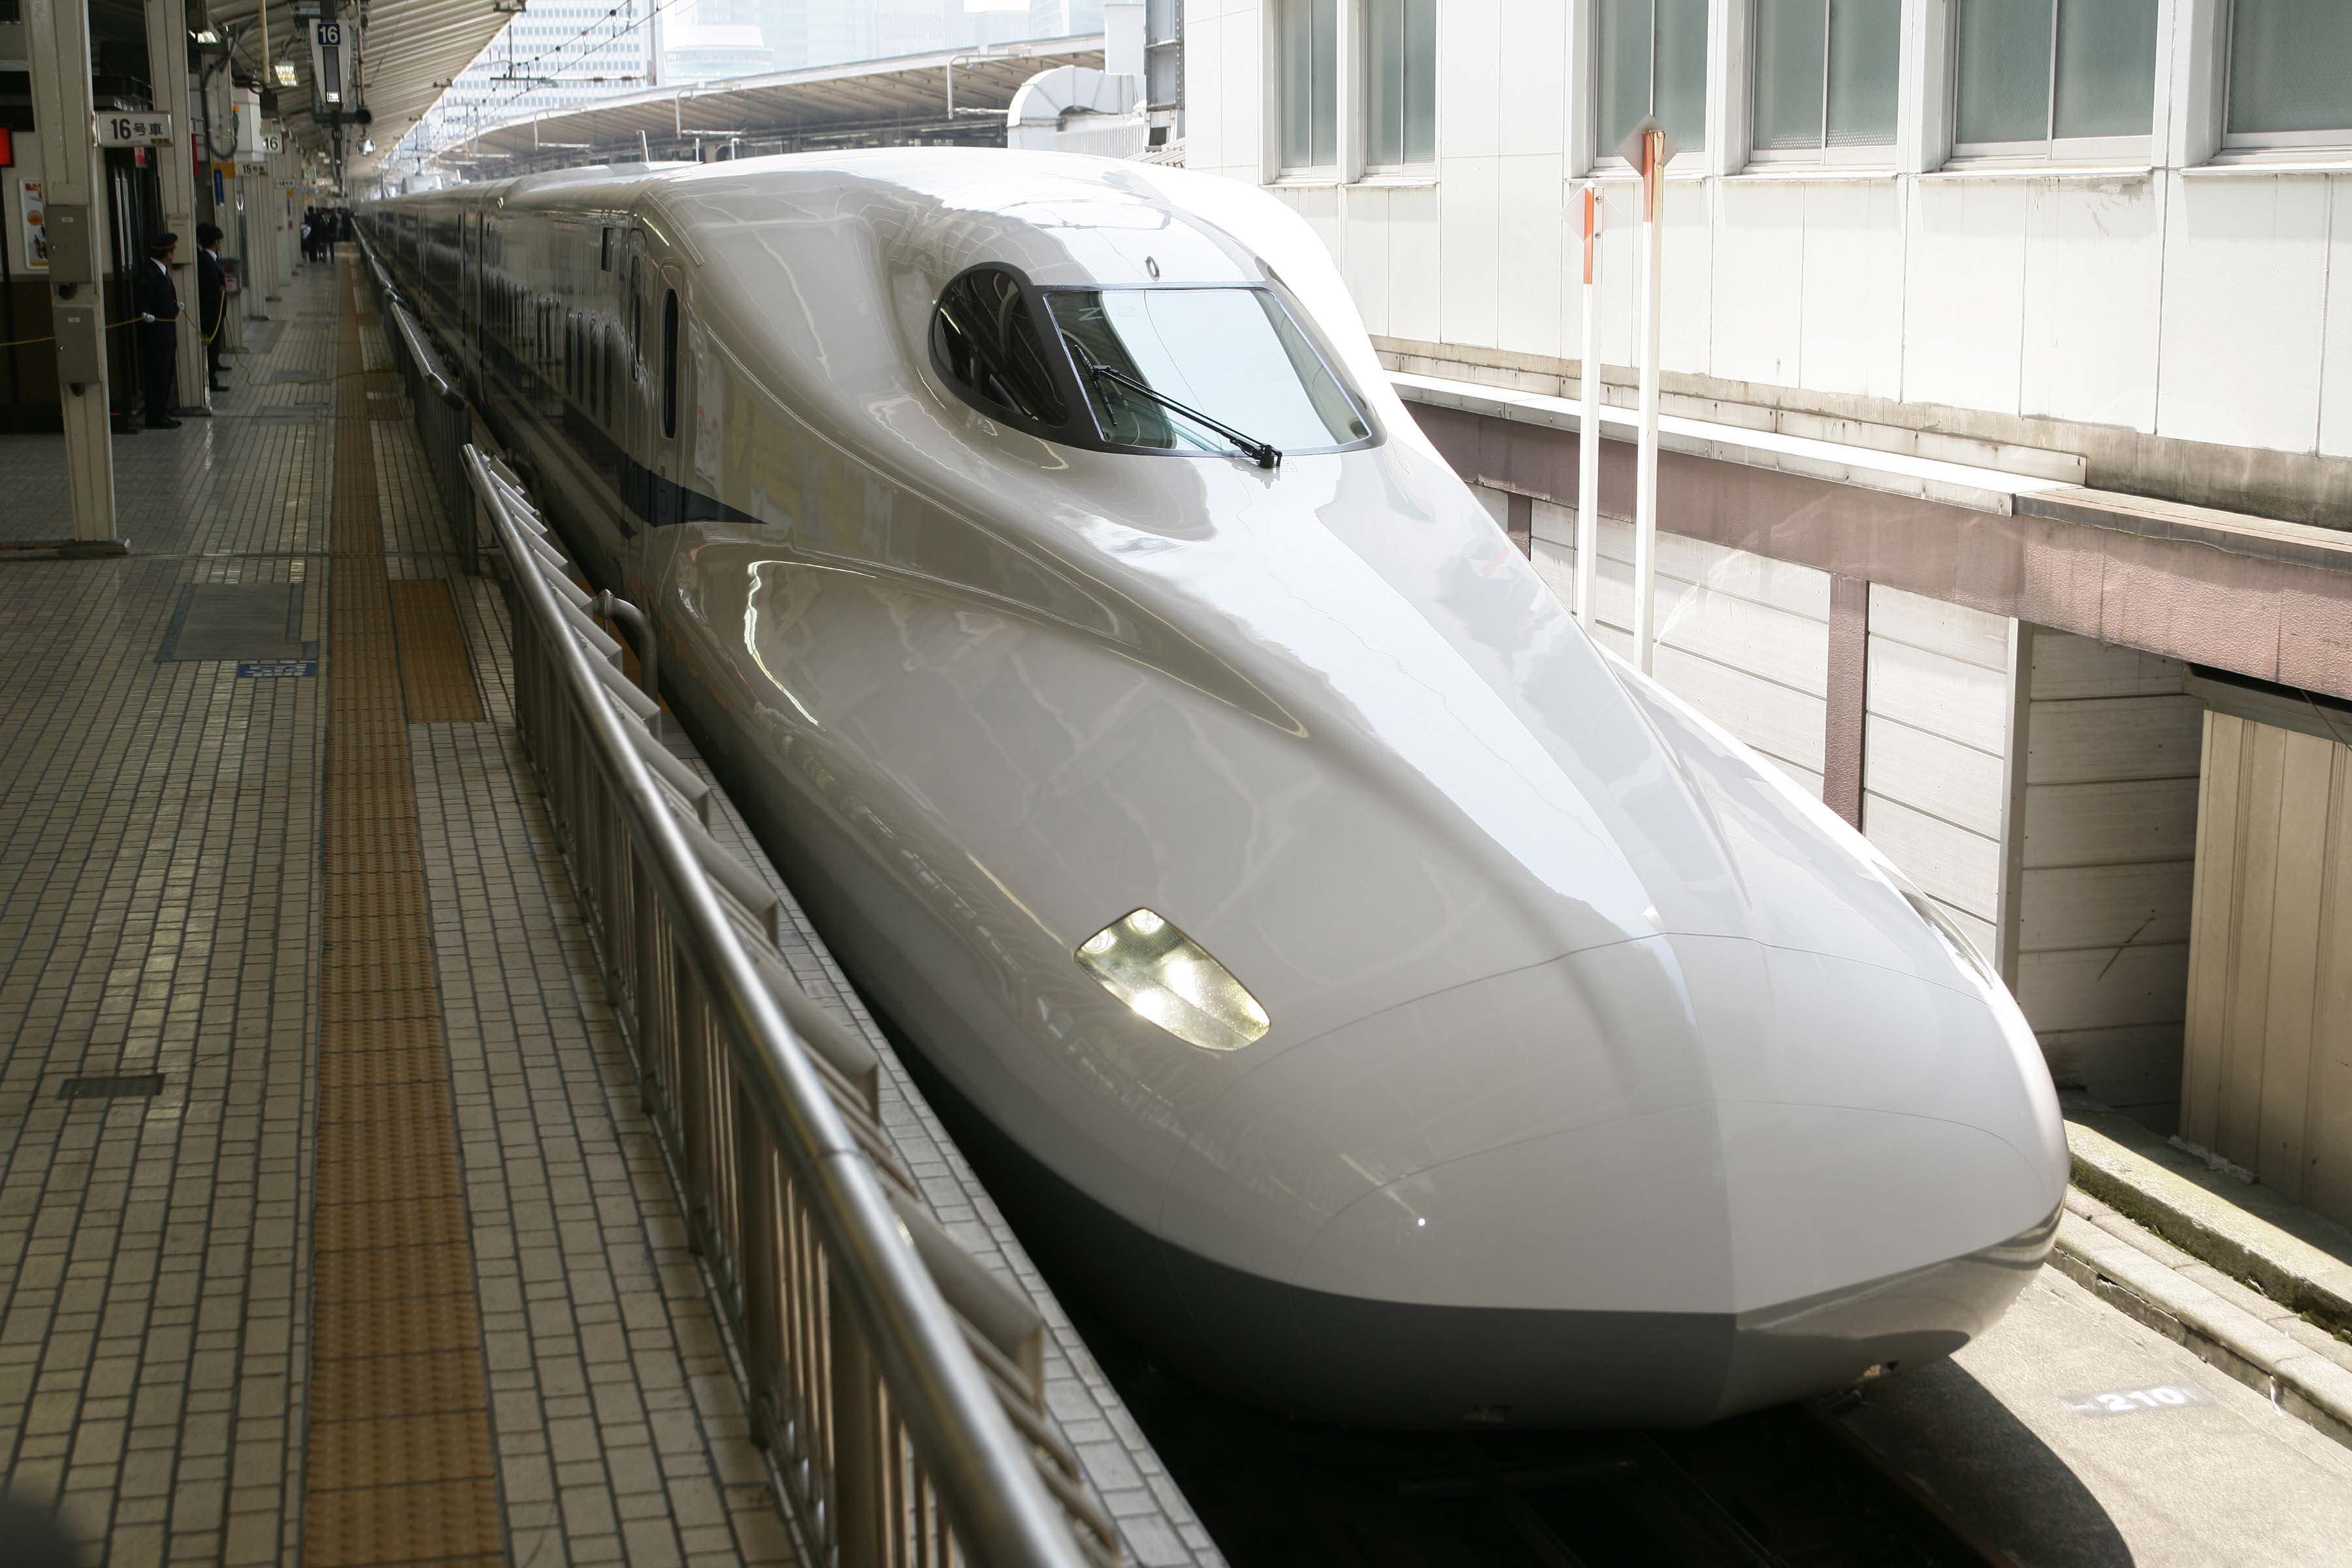 Japan's Bullet Train to India